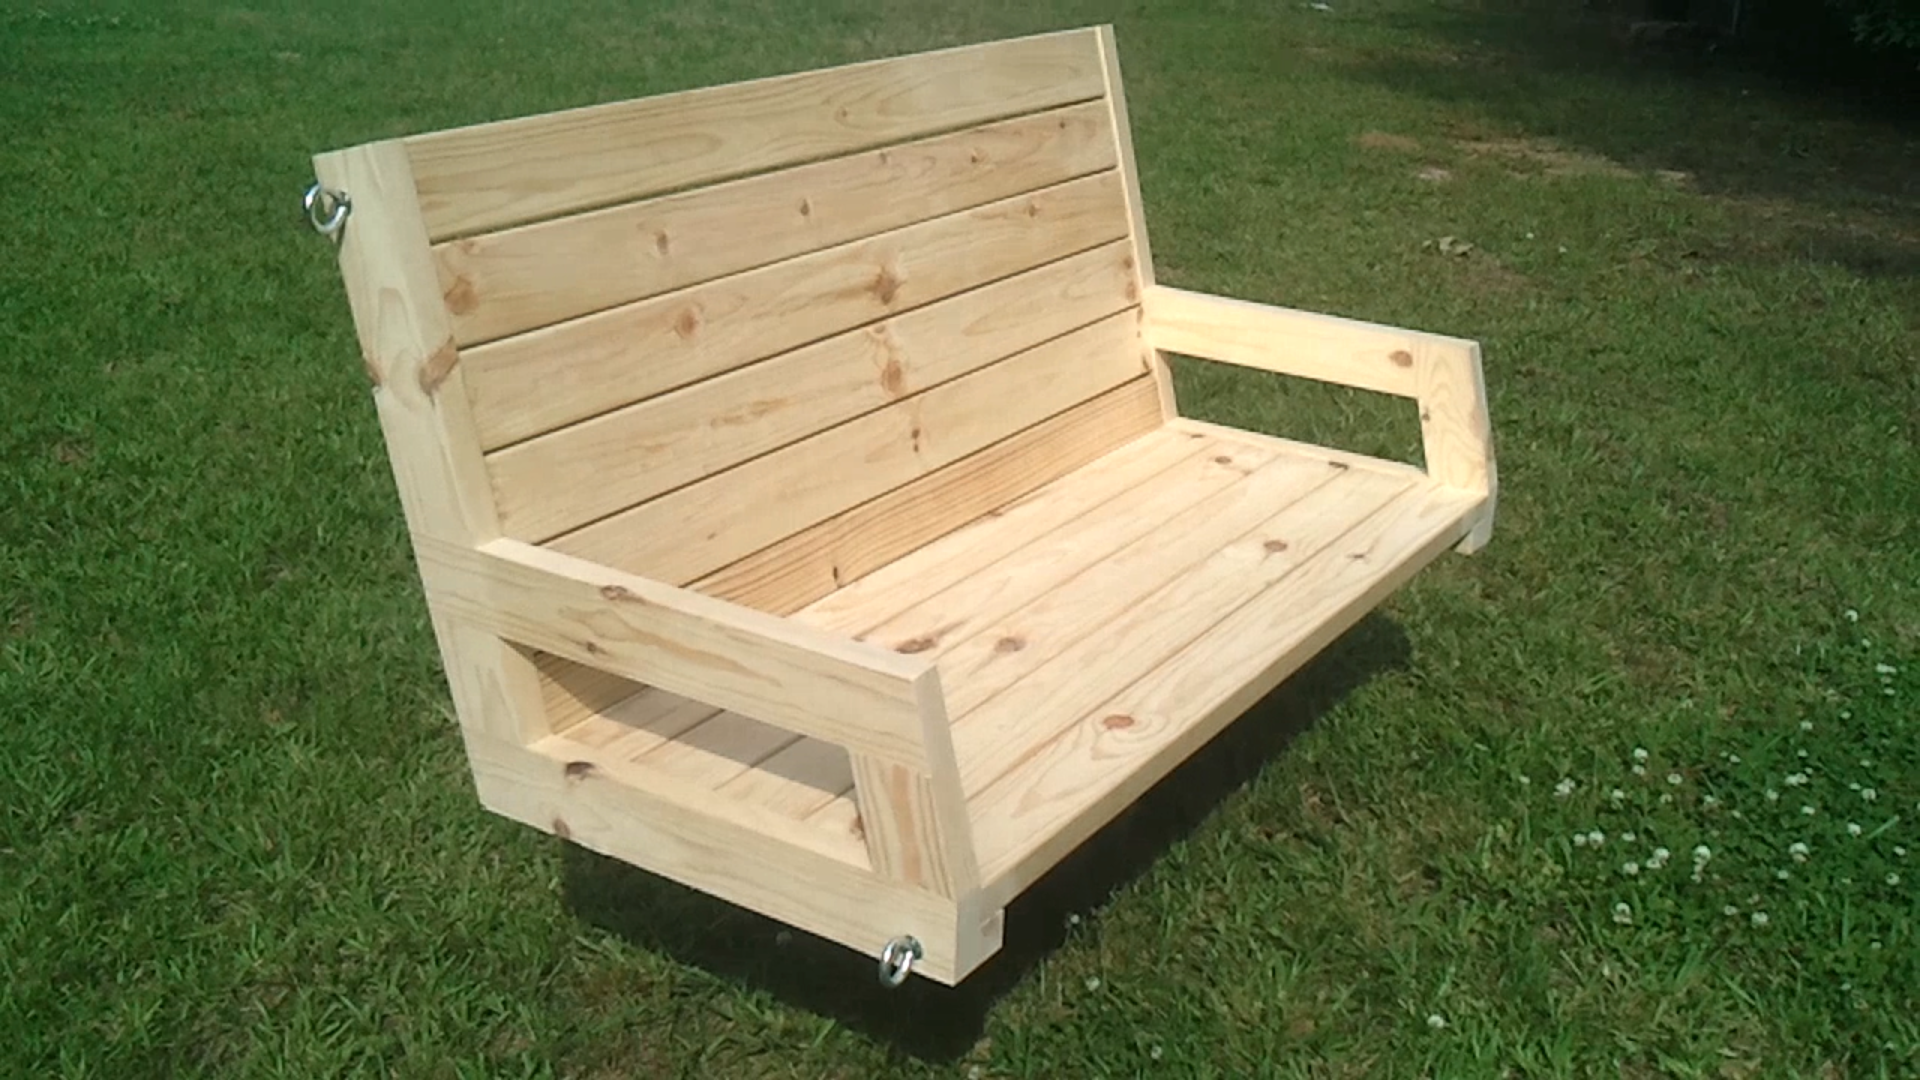 How To Build A 2×4 Porch Swing | For the Yard | Porch ...